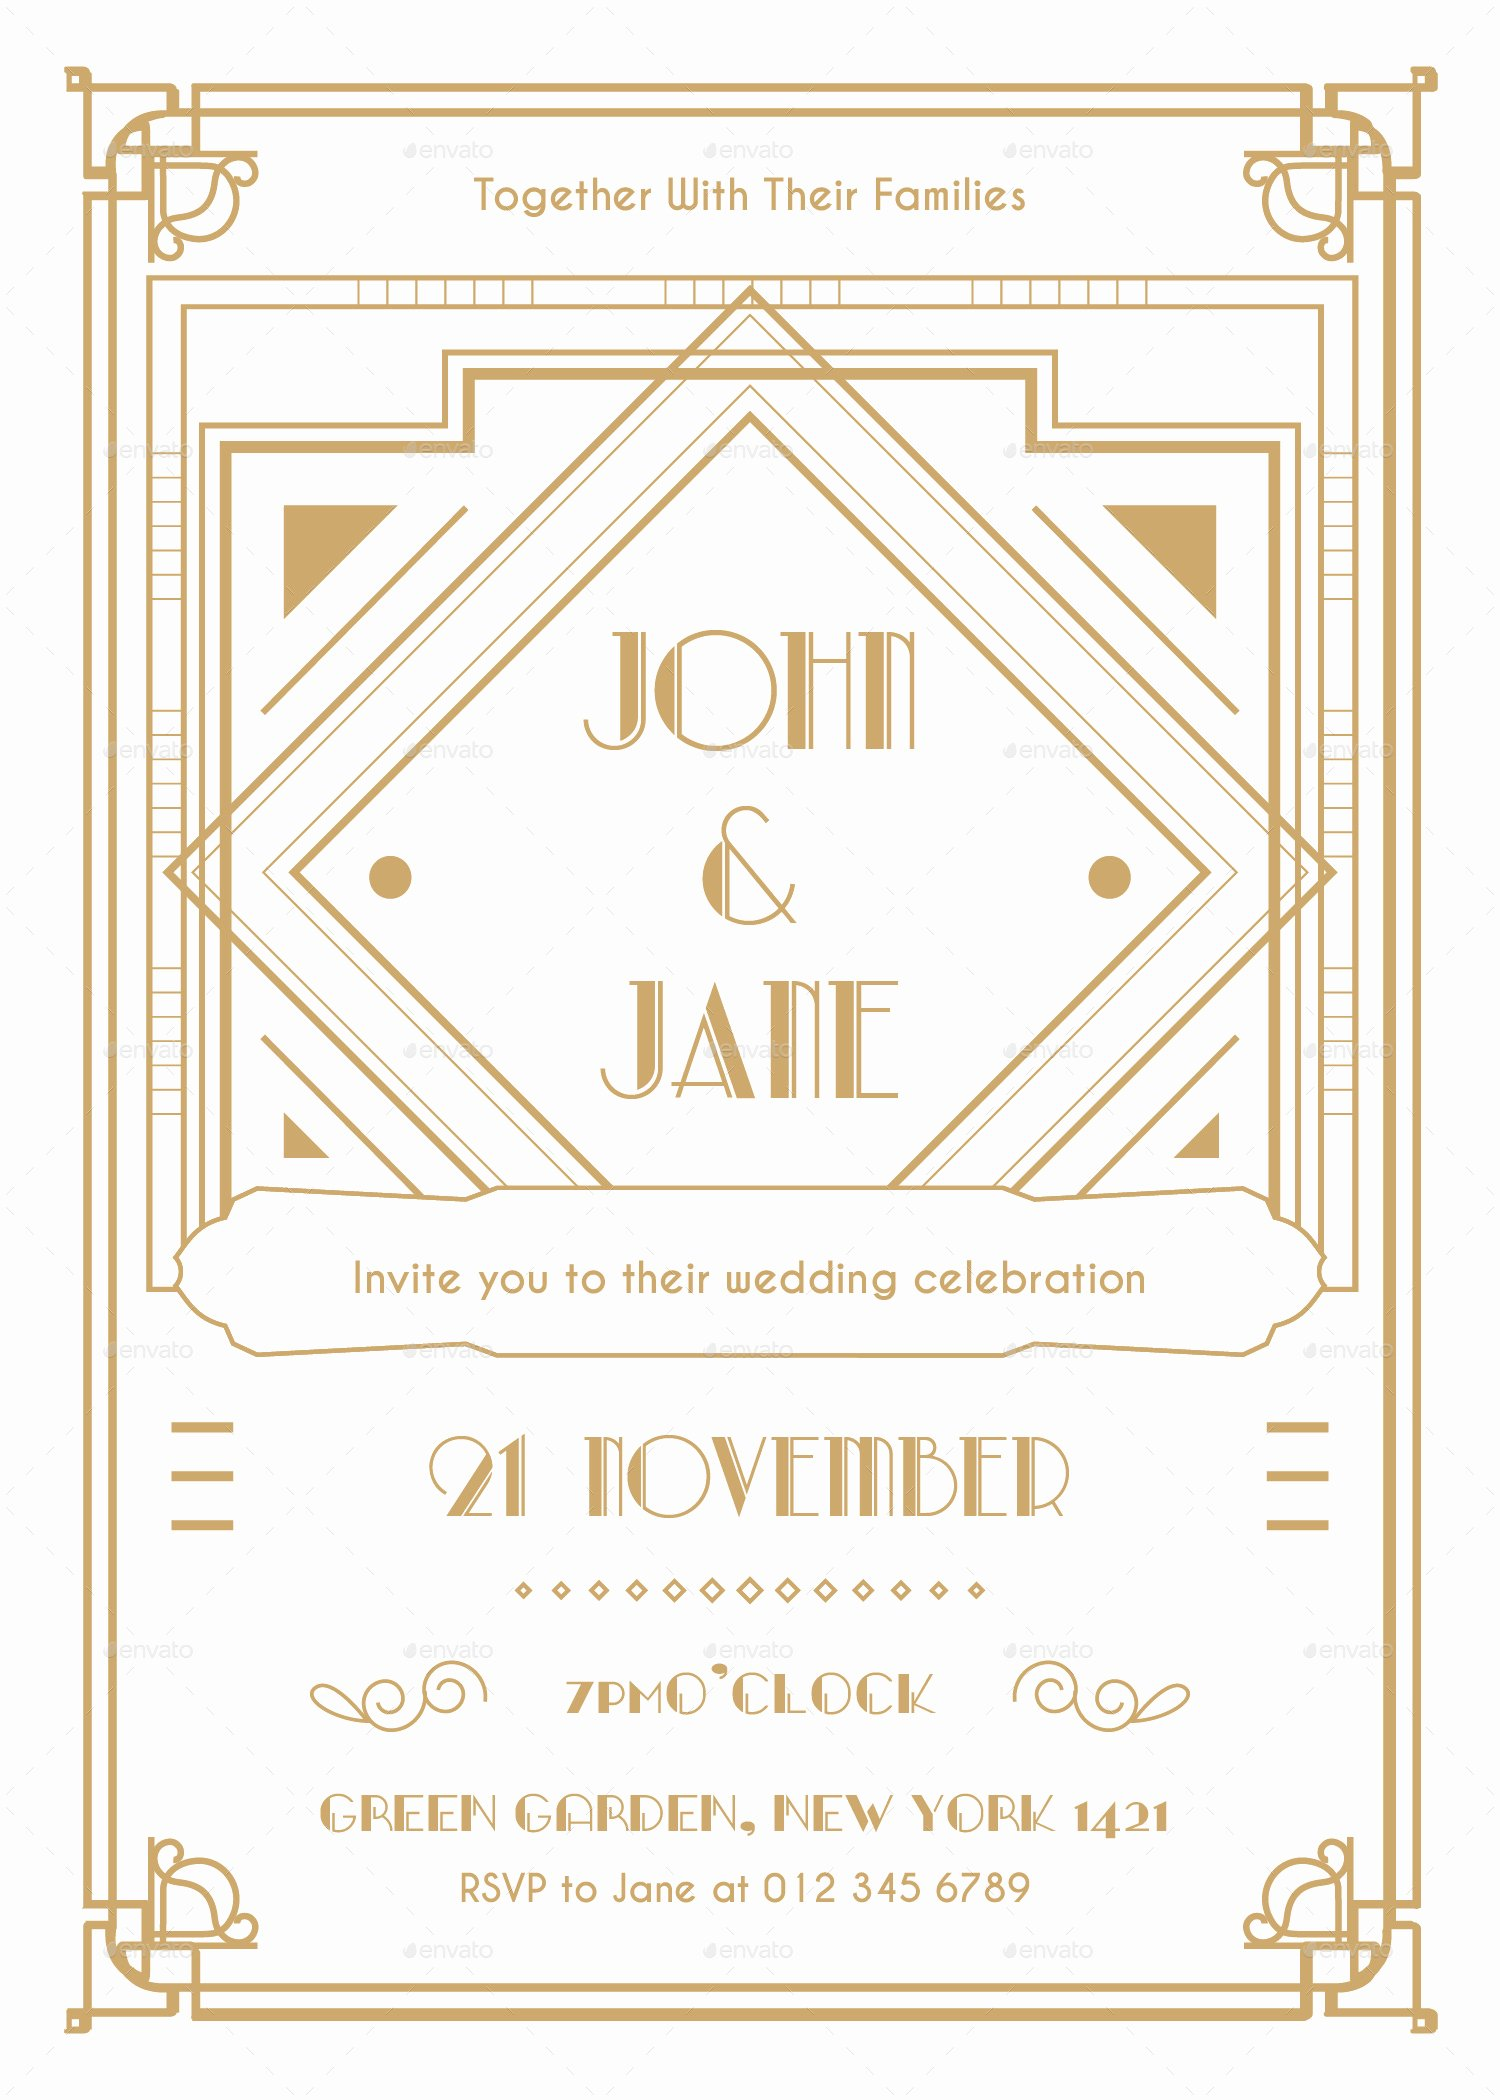 Art Deco Invitation Template Fresh Art Deco Wedding Invitation by Infinite